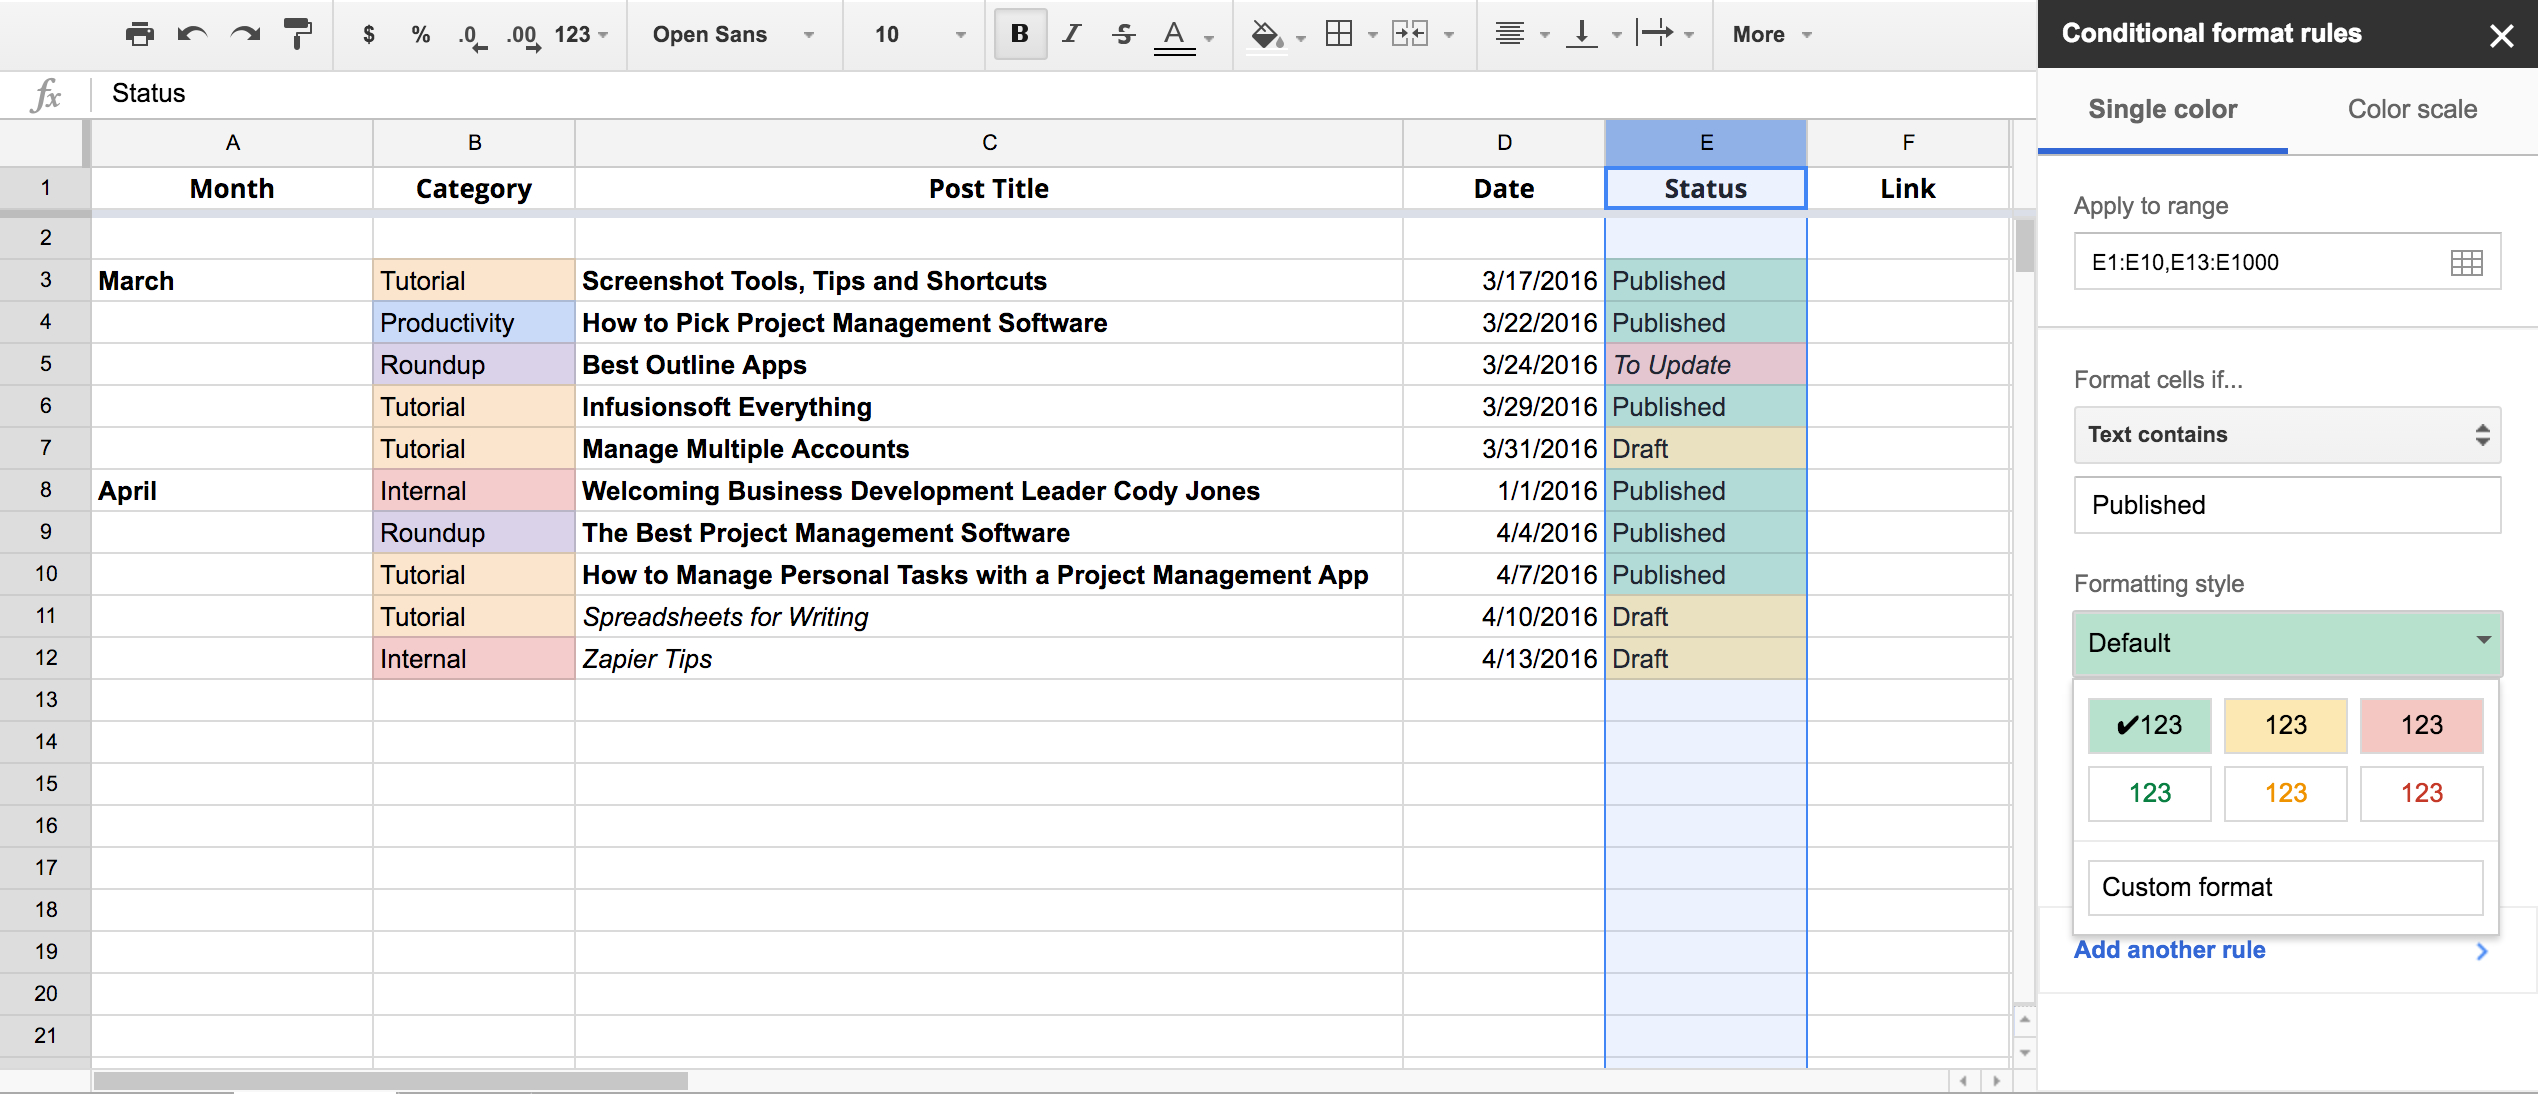 Jobs That Use Spreadsheets Inside Write Faster With Spreadsheets: 10 Shortcuts For Composing Outlines Jobs That Use Spreadsheets Google Spreadshee Google Spreadshee 3 jobs that use spreadsheets